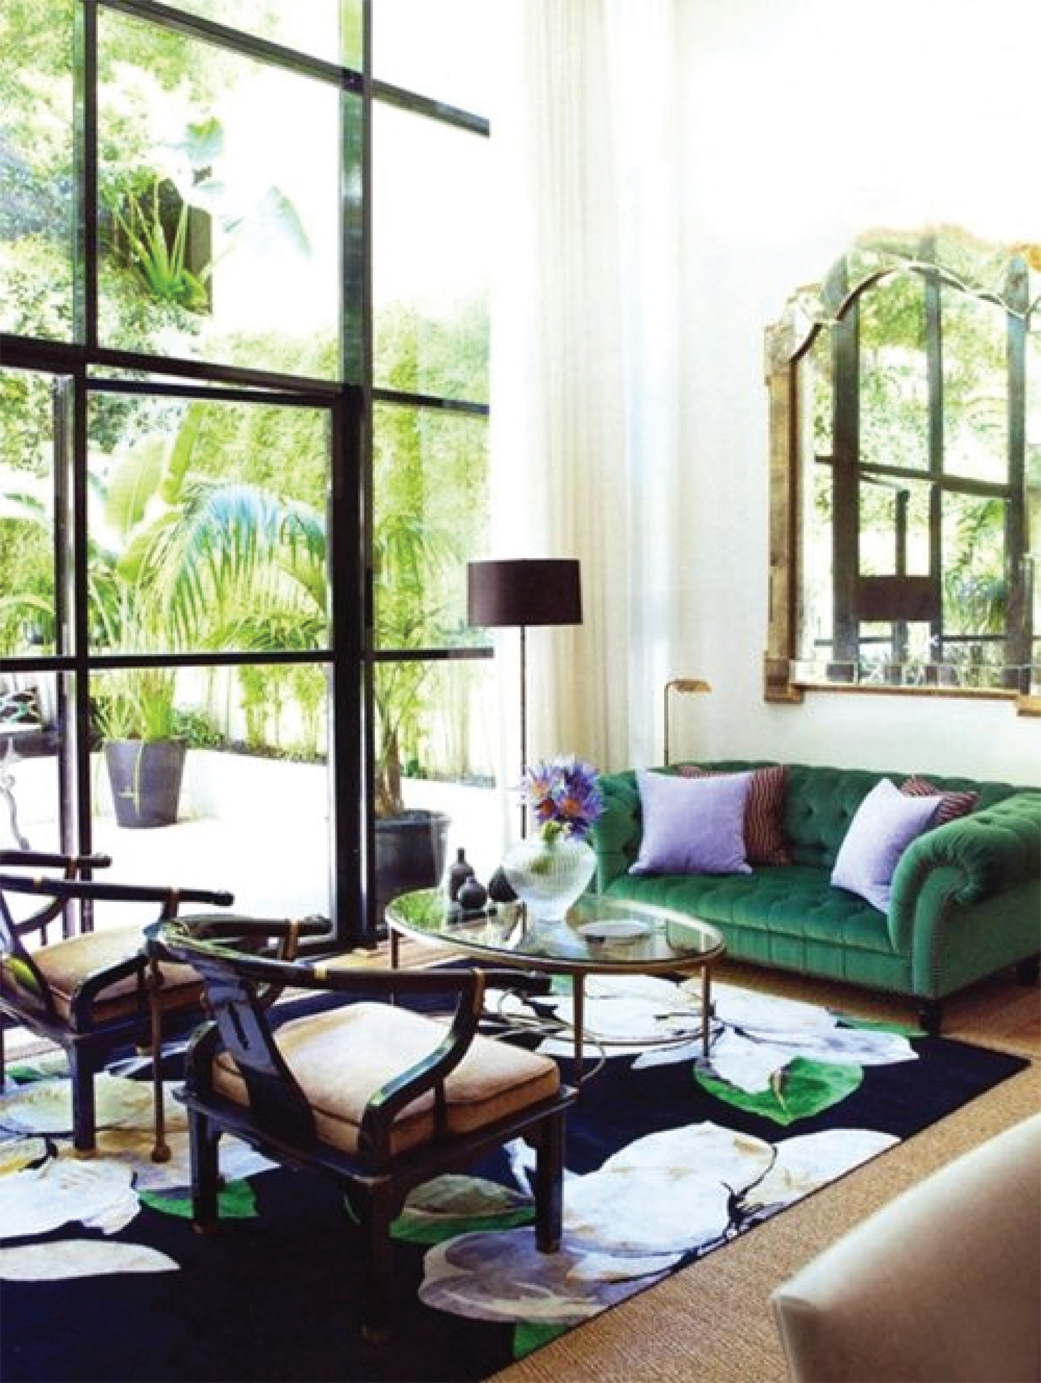 Eclectic Living Room Design | Green Tufted Sofa